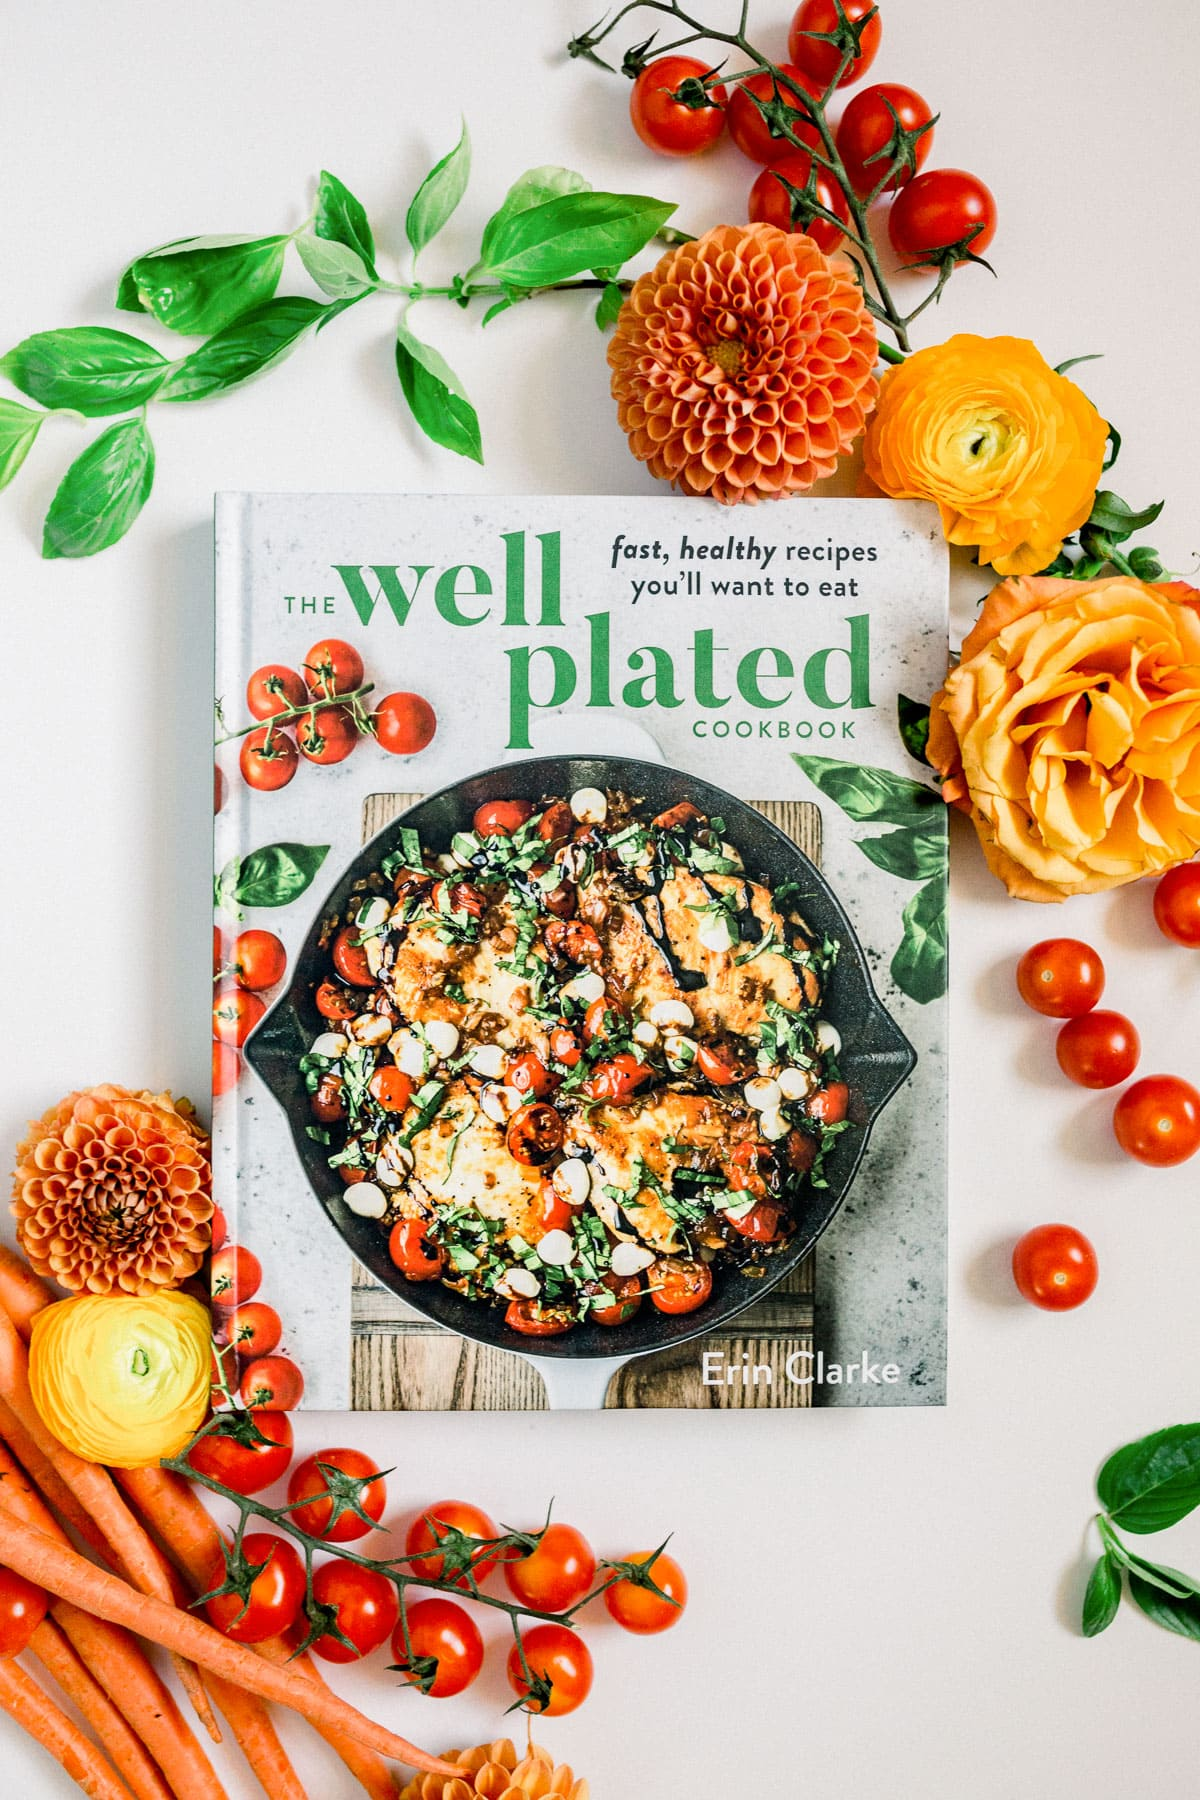 The Well Plated Cookbook on a table with flowers